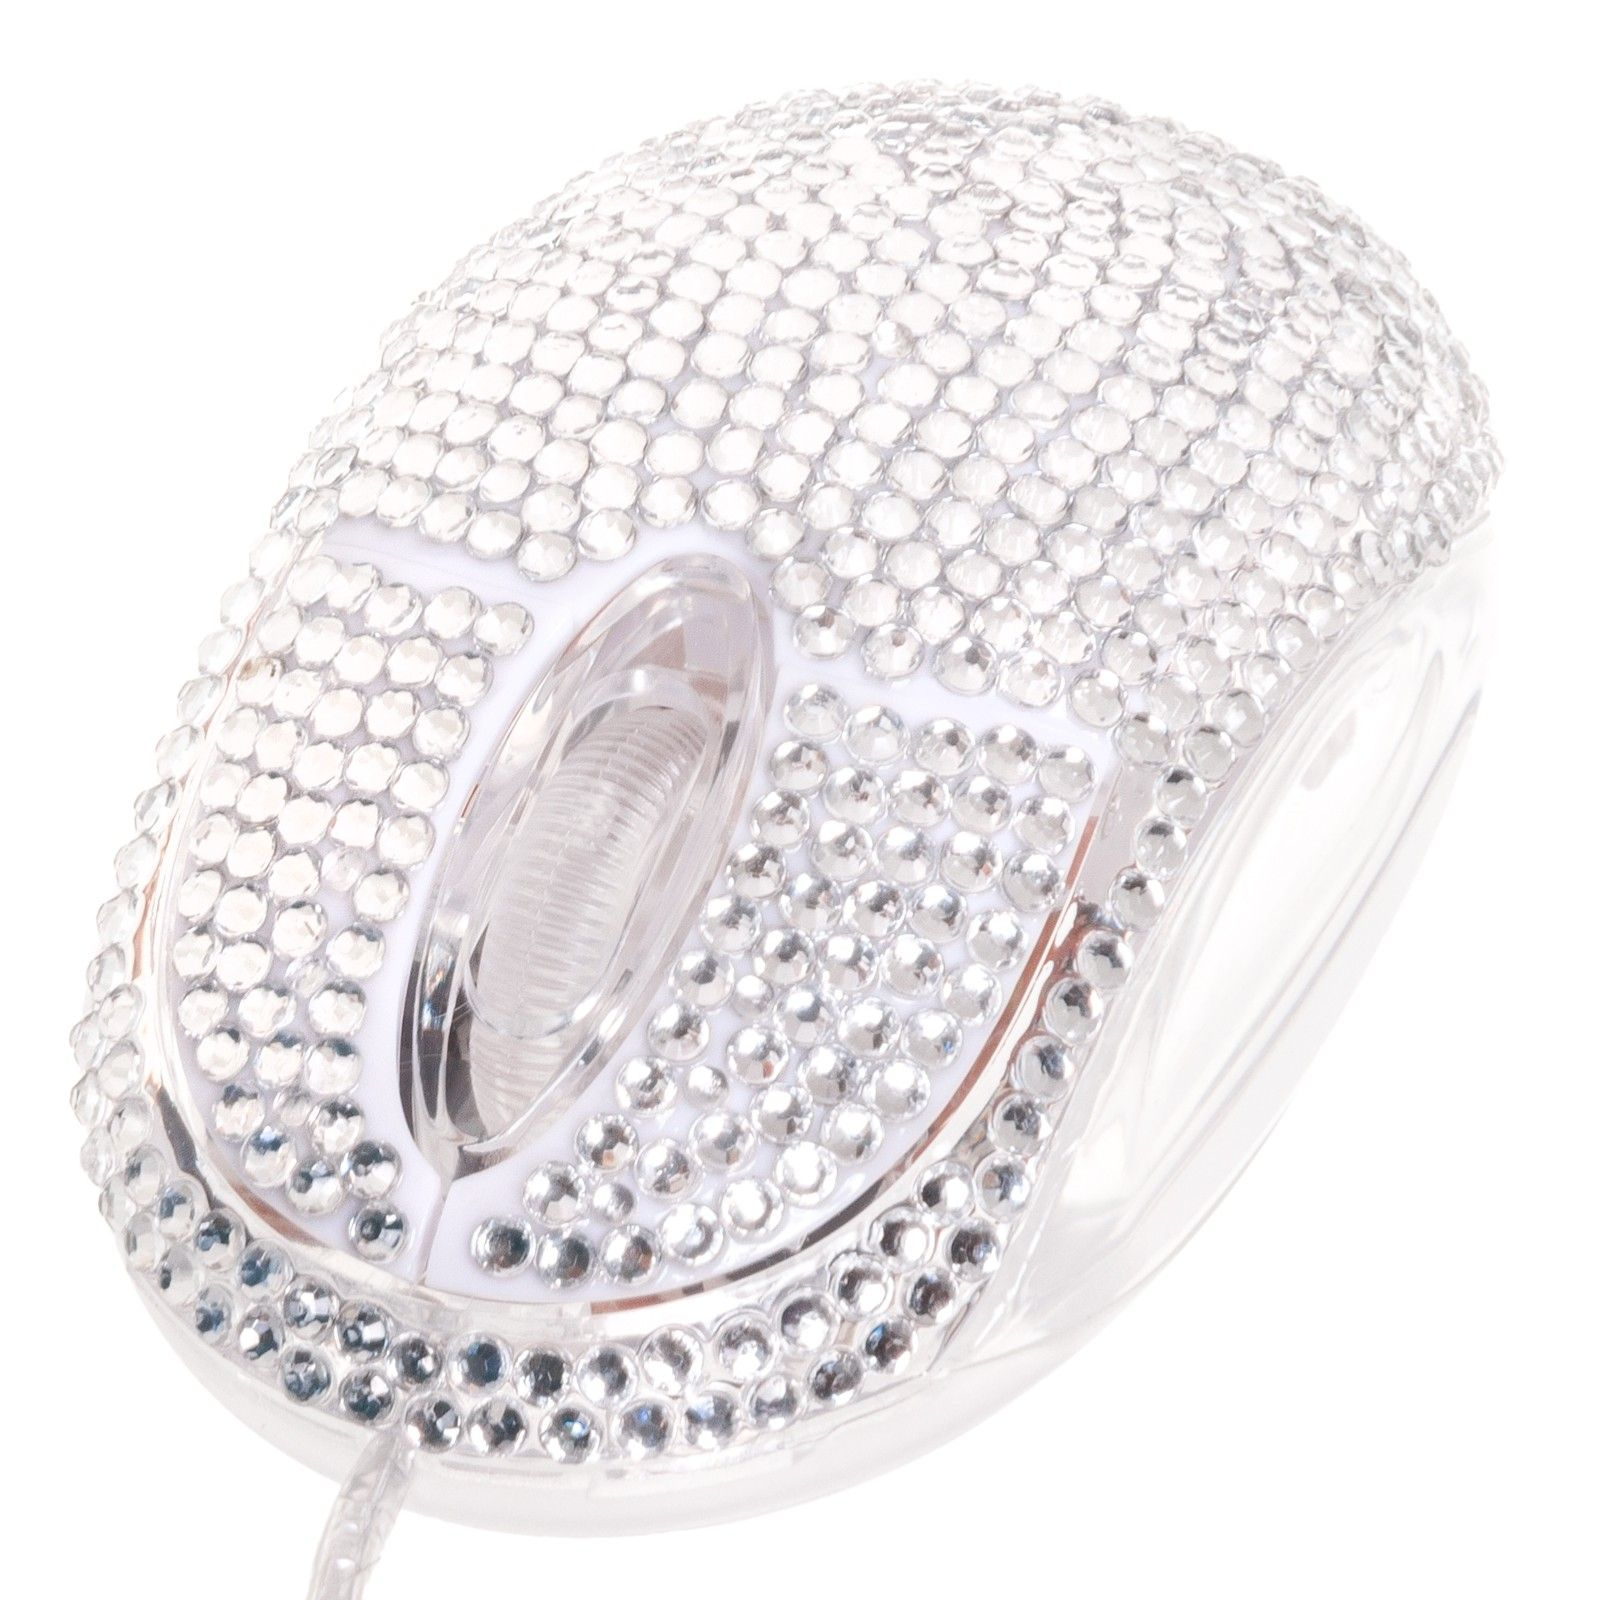 USB Optical Scroll Wheel Silver Crystal Rhinestone Computer Mouse - Crystal USB Mice - Computer